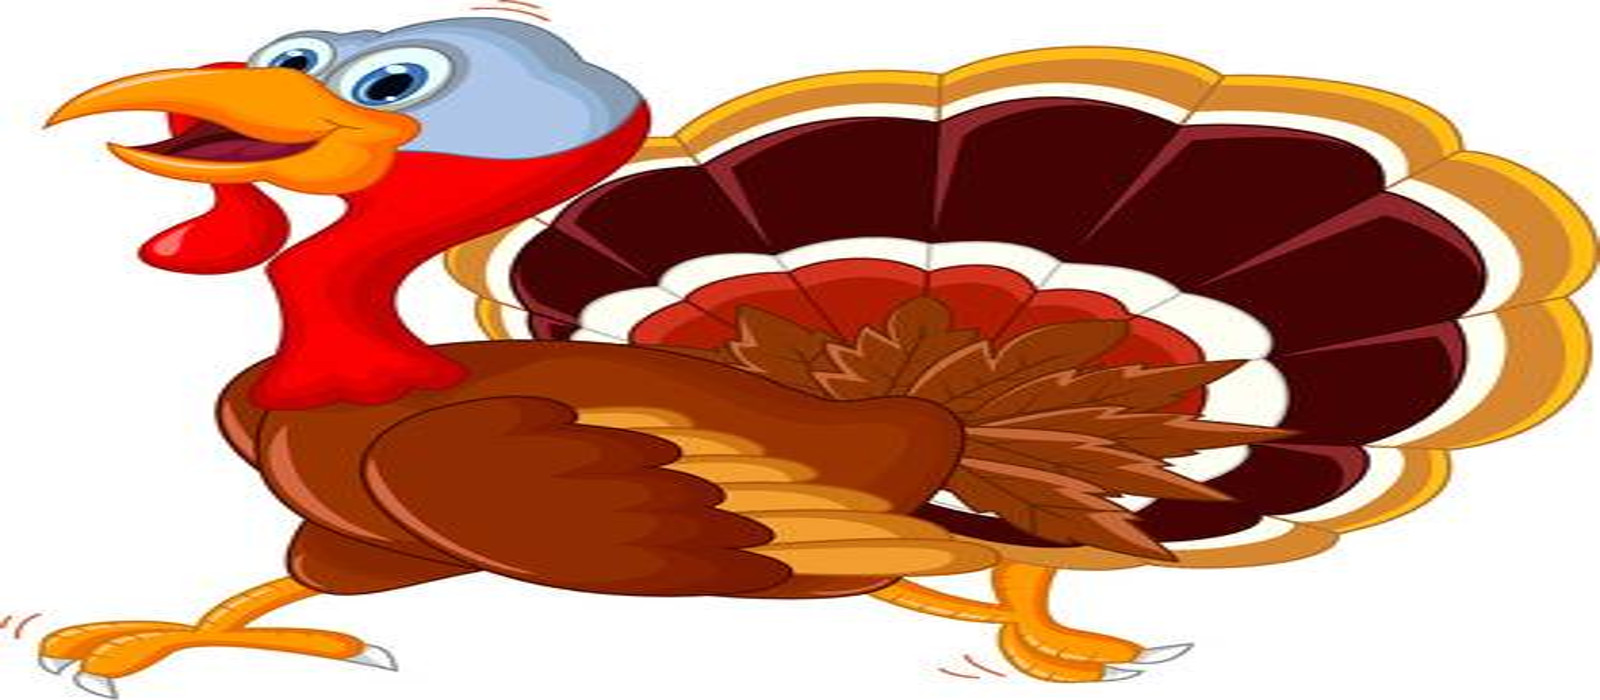 KYYK Turkey Texting Giveaway